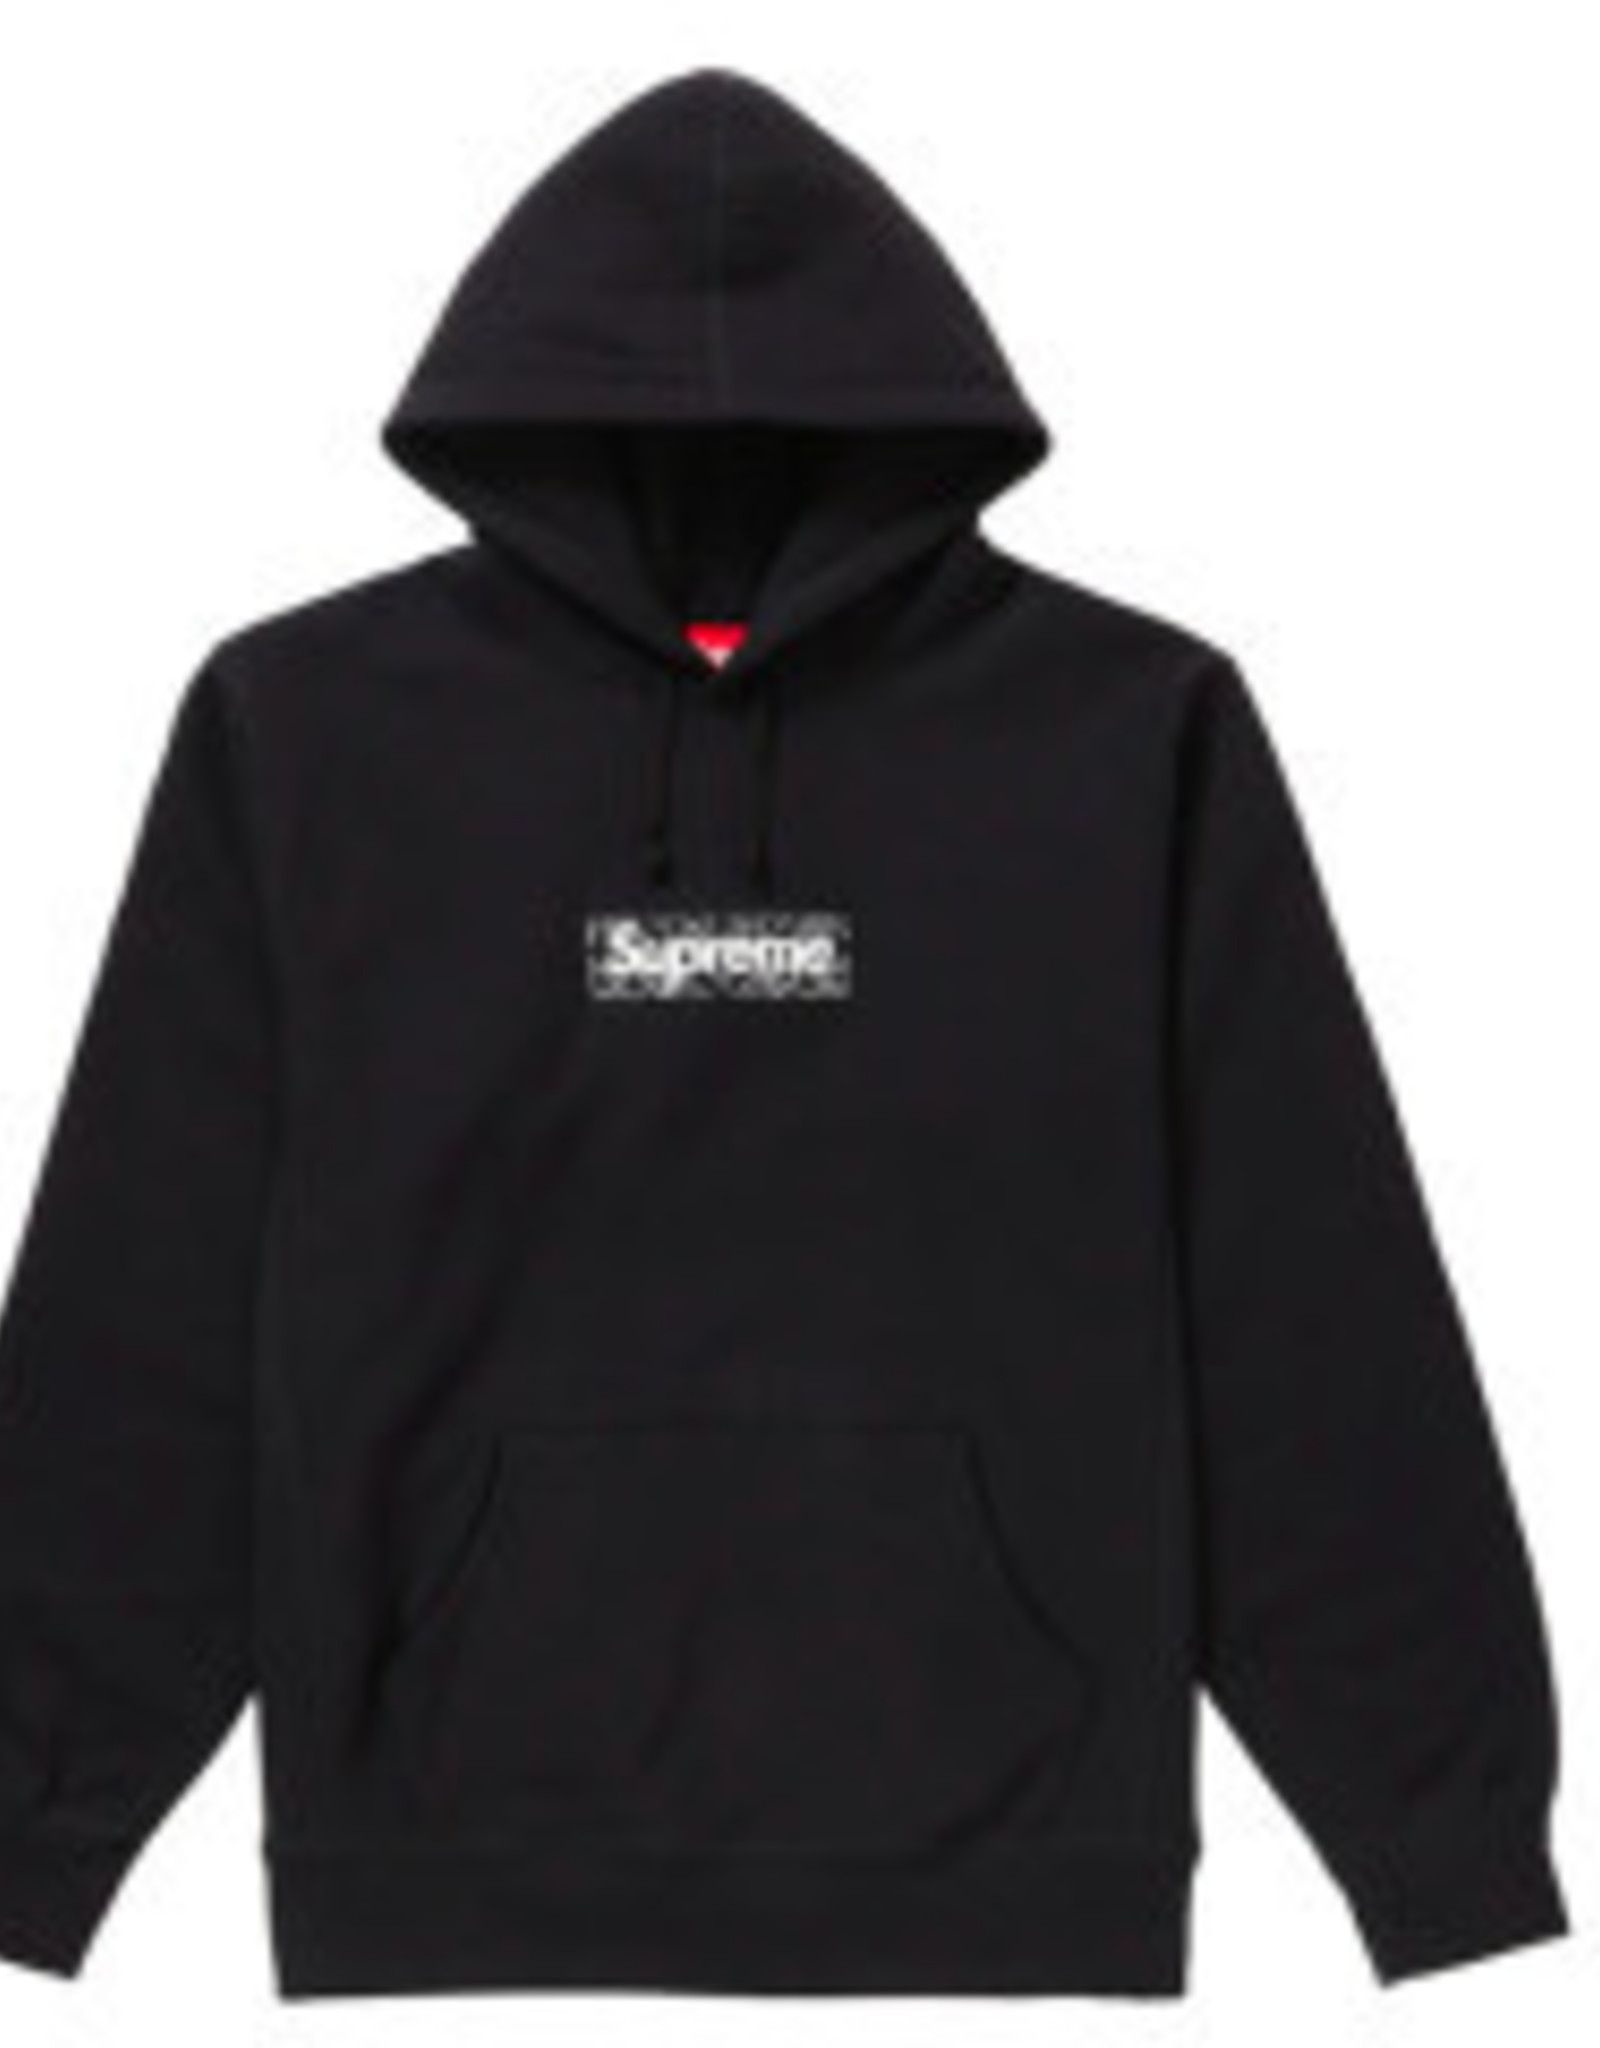 SUPREME DOUSED-Supreme Bandana Box Logo Hooded Sweatshirt